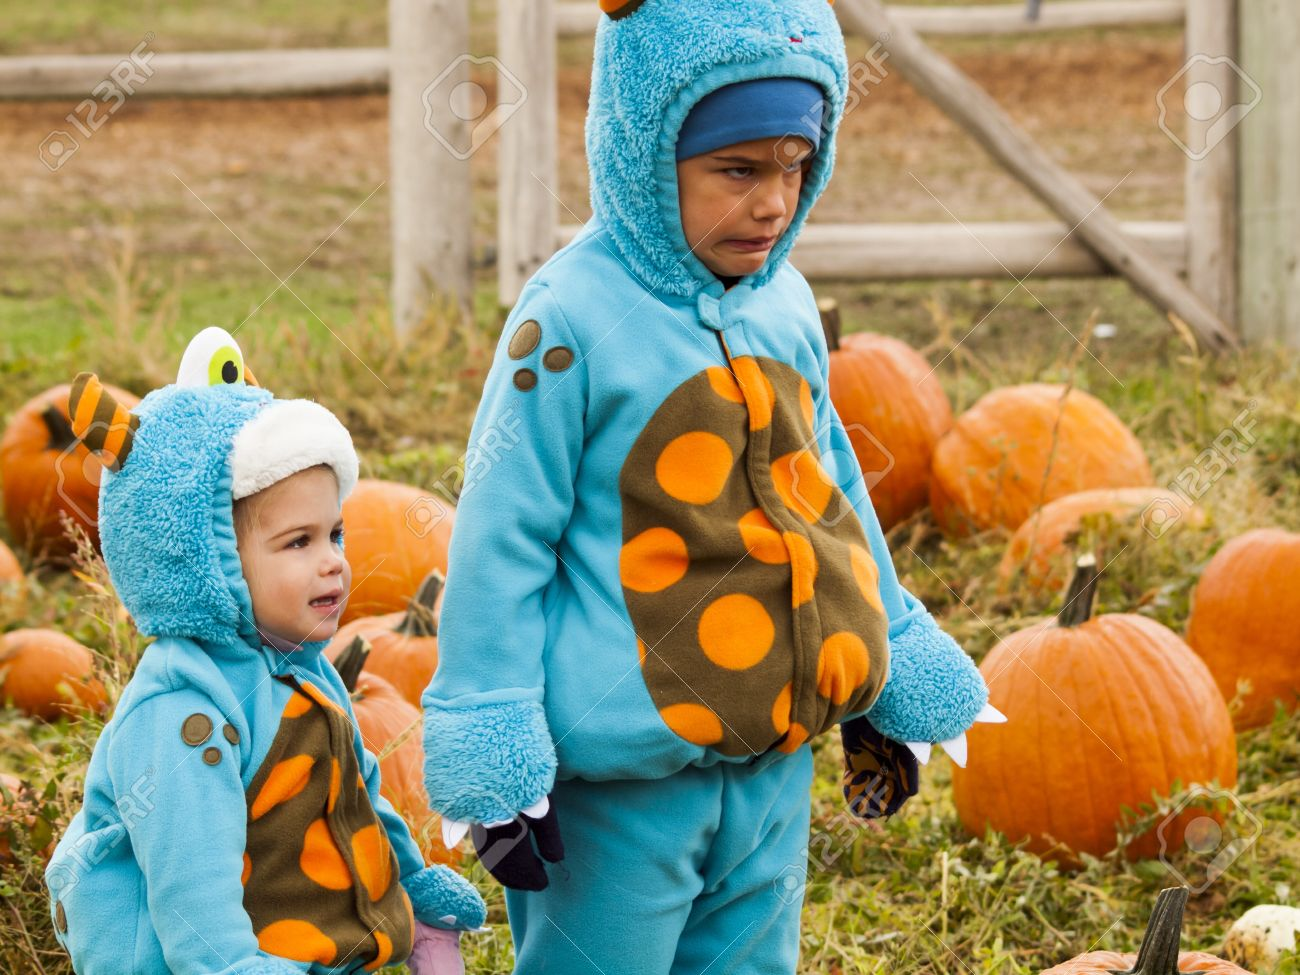 little kids in halloween costumes picking pumpkind at the pumpkin patch in aearly autumn